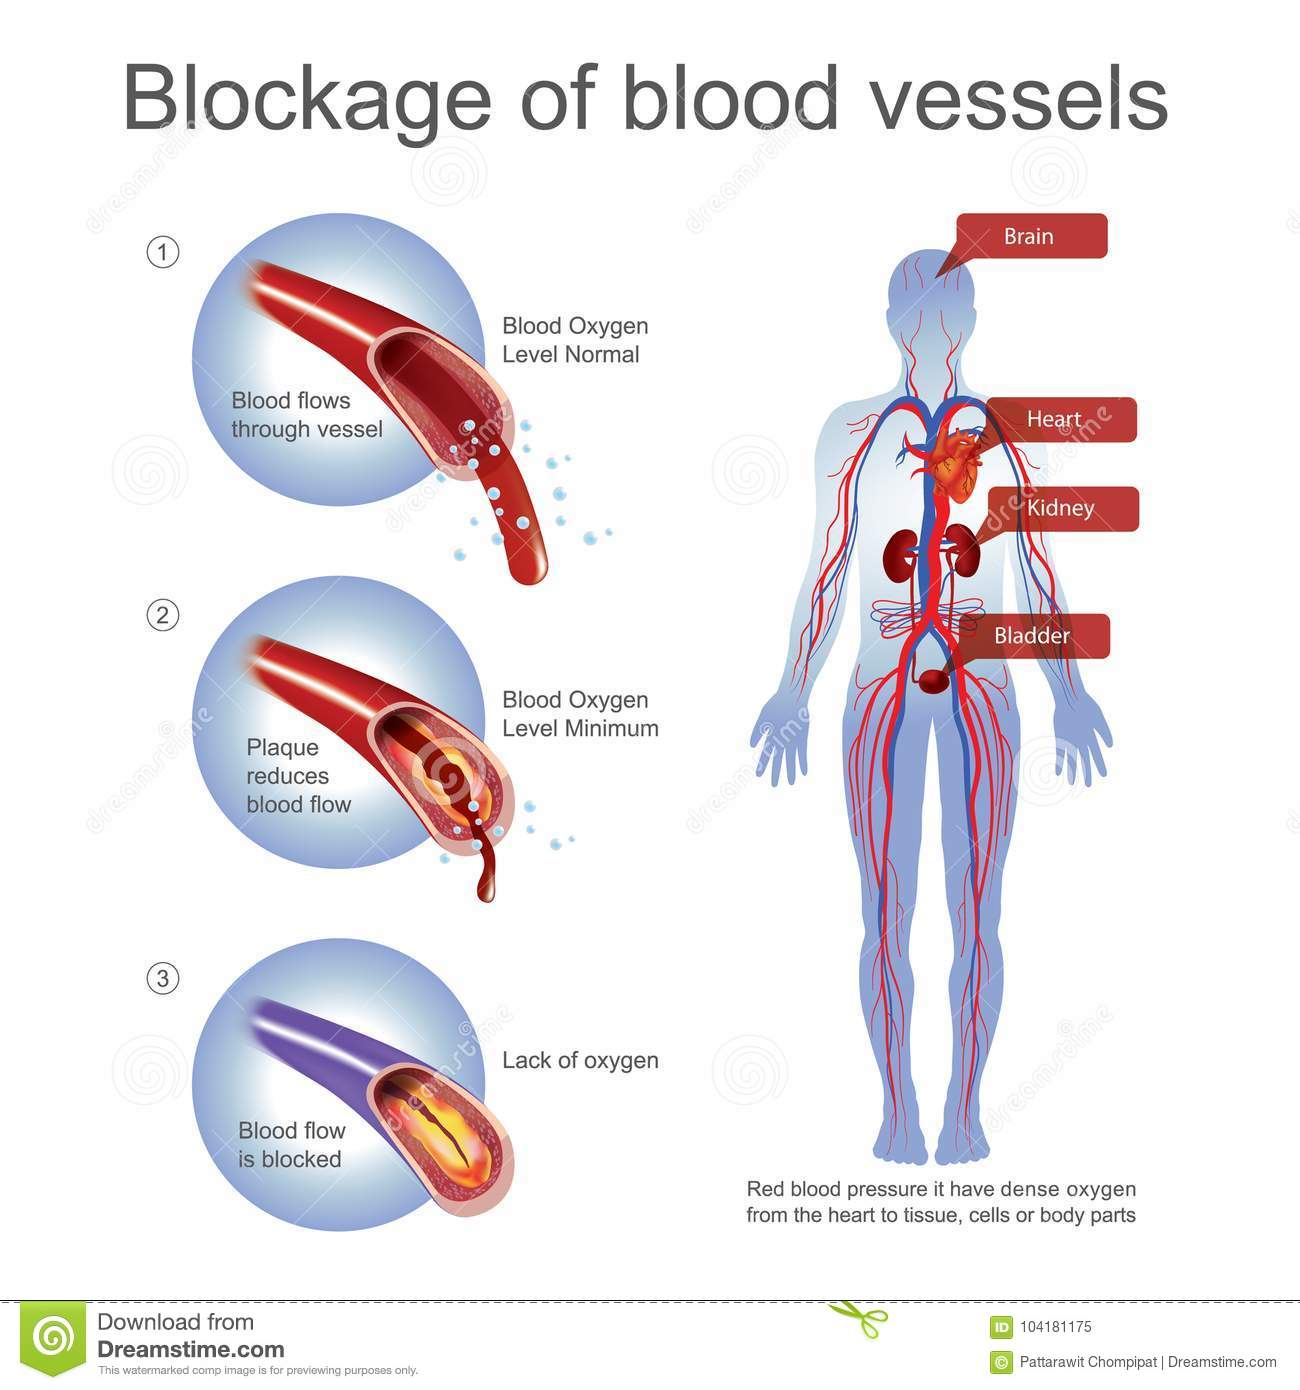 Blockage of blood vessels stock vector illustration of part download blockage of blood vessels stock vector illustration of part 104181175 ccuart Image collections